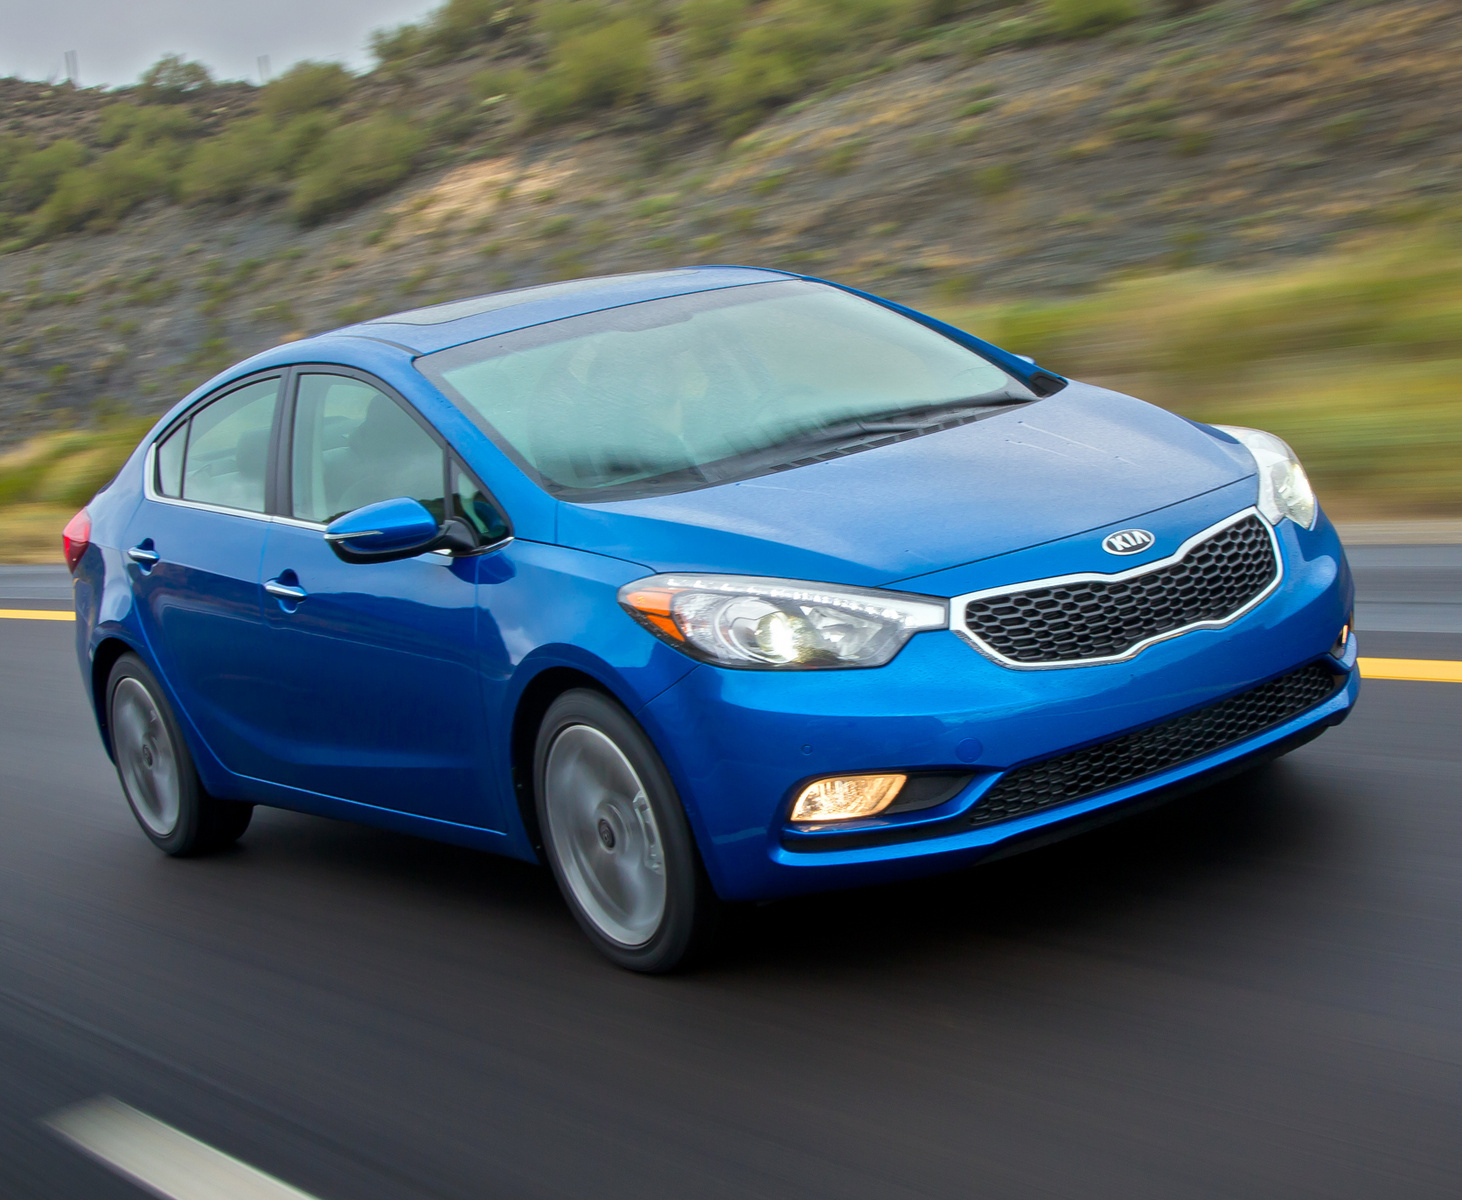 2014 kia forte test drive review cargurus. Black Bedroom Furniture Sets. Home Design Ideas